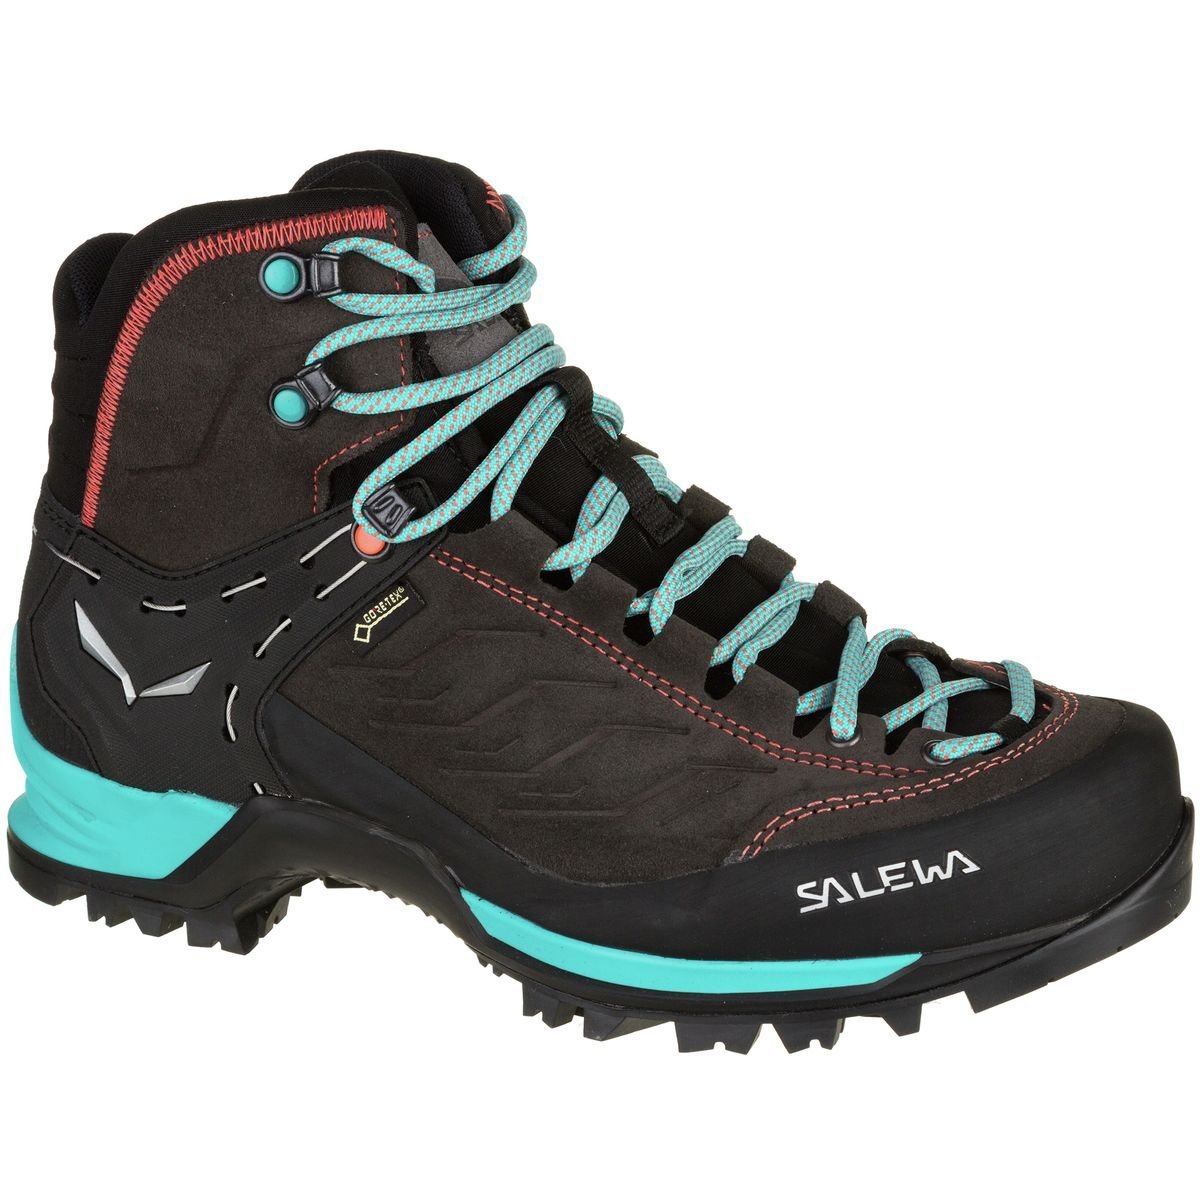 Salewa Women's Mtn Trainer Mid GTX-W Mountaineering Boot, Magnet/Viridian Green, 6.5 D US by Salewa